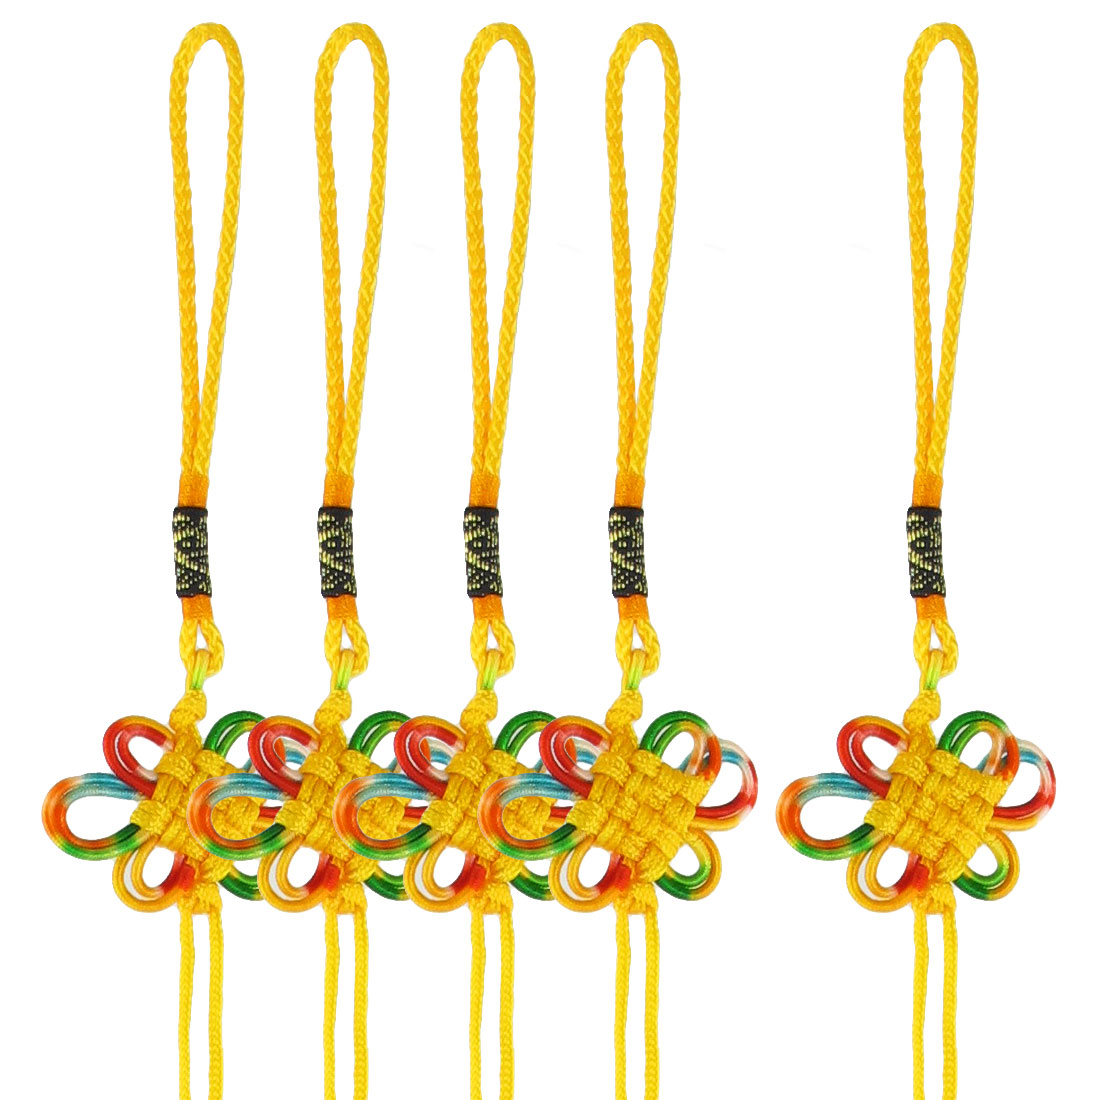 Handmade Yellow Braided Cord Colorful Floral Chinese Knot Ornament